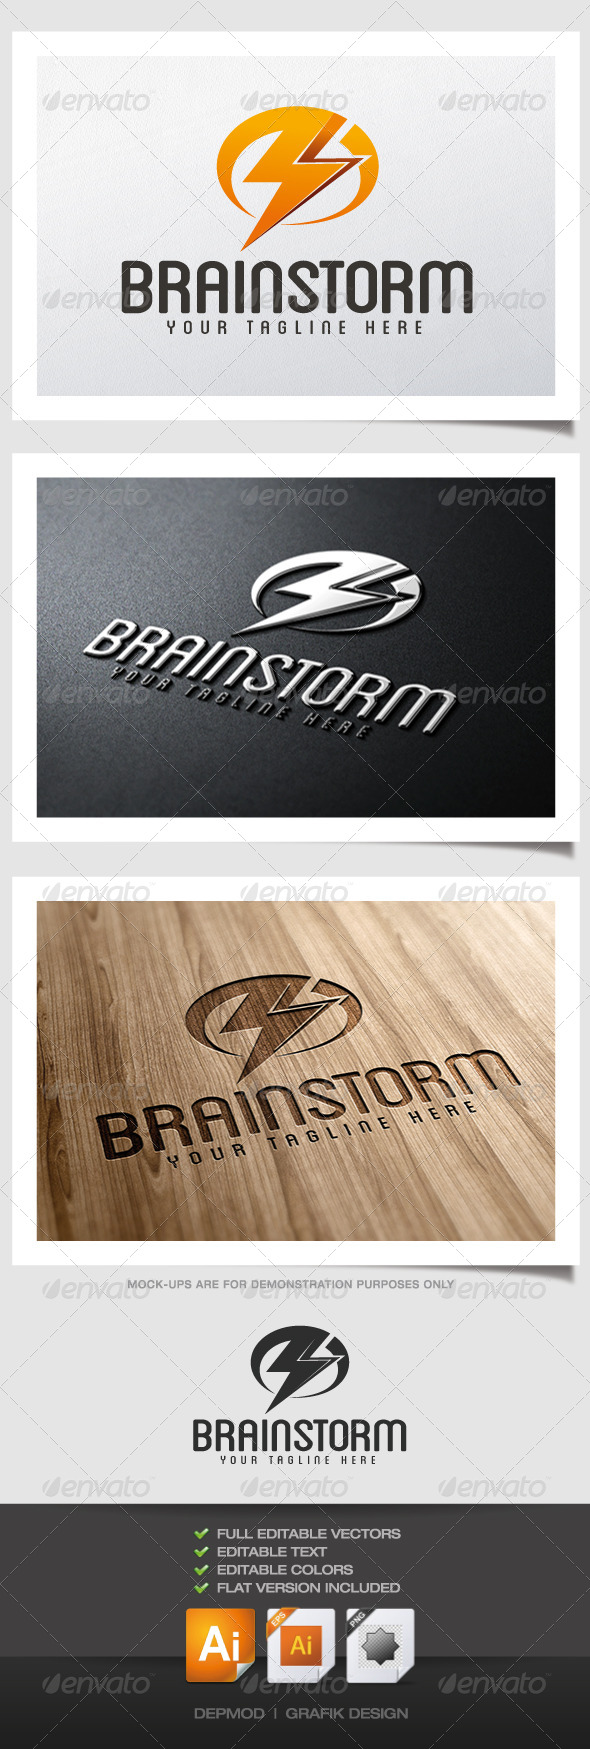 GraphicRiver Brainstorm logo 4431781